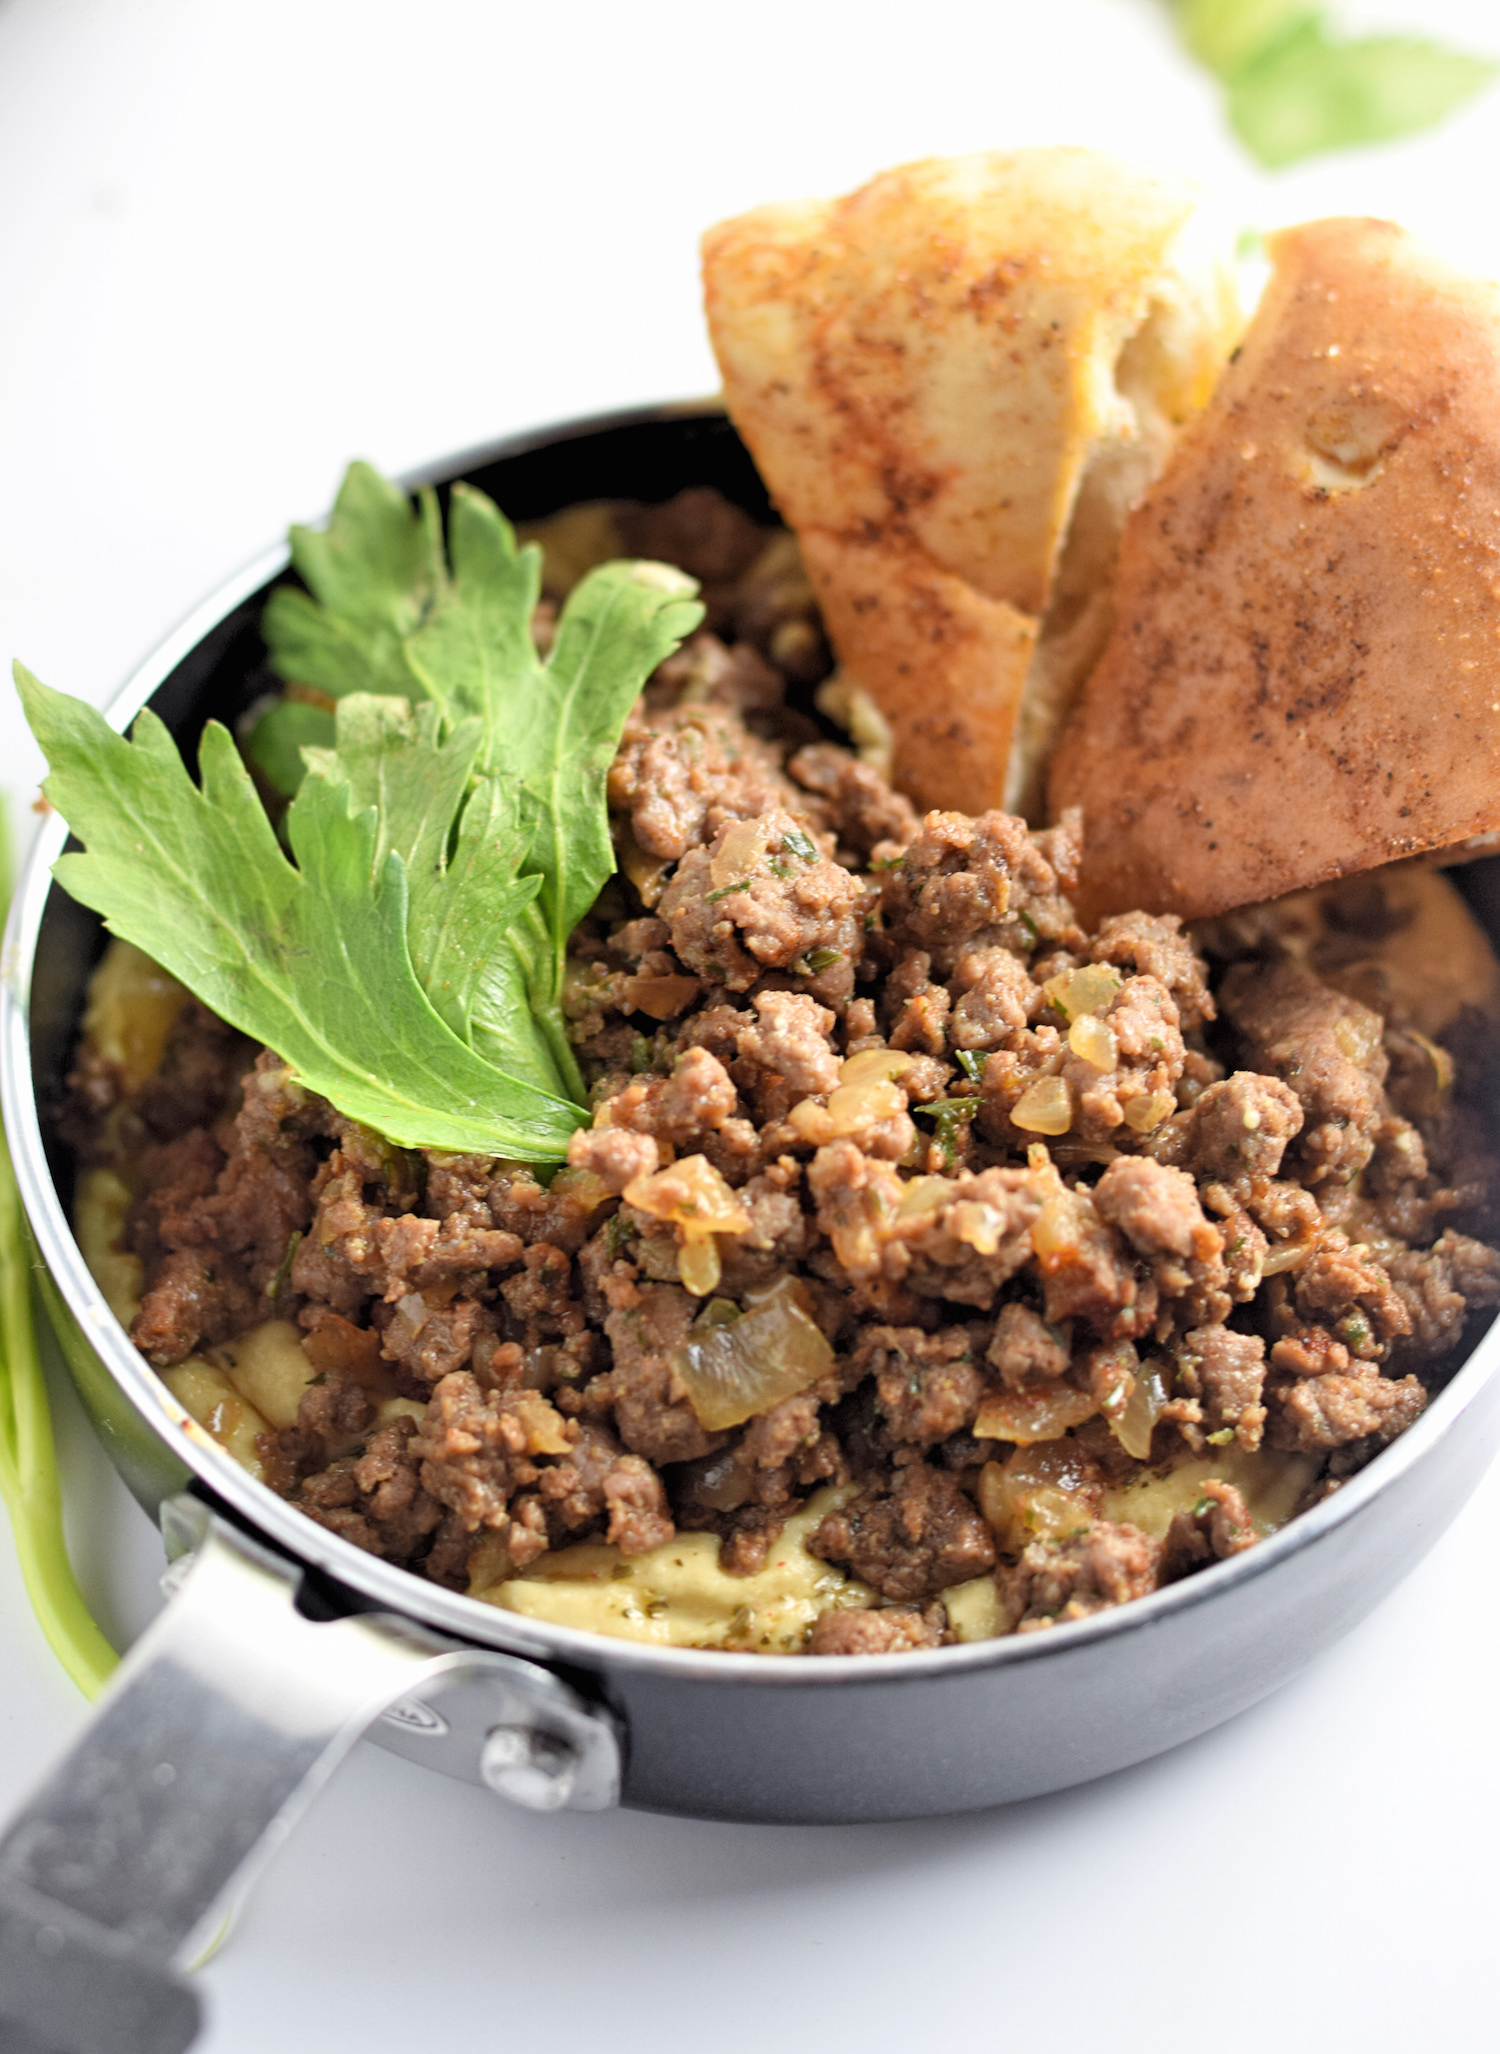 Ground Beef with Hummus and Pita Chips: chopped meat flavored with Middle Eastern Spices, served with hummus and homemade pita chips. Perfect Super Bowl dish! | TrufflesandTrends.com